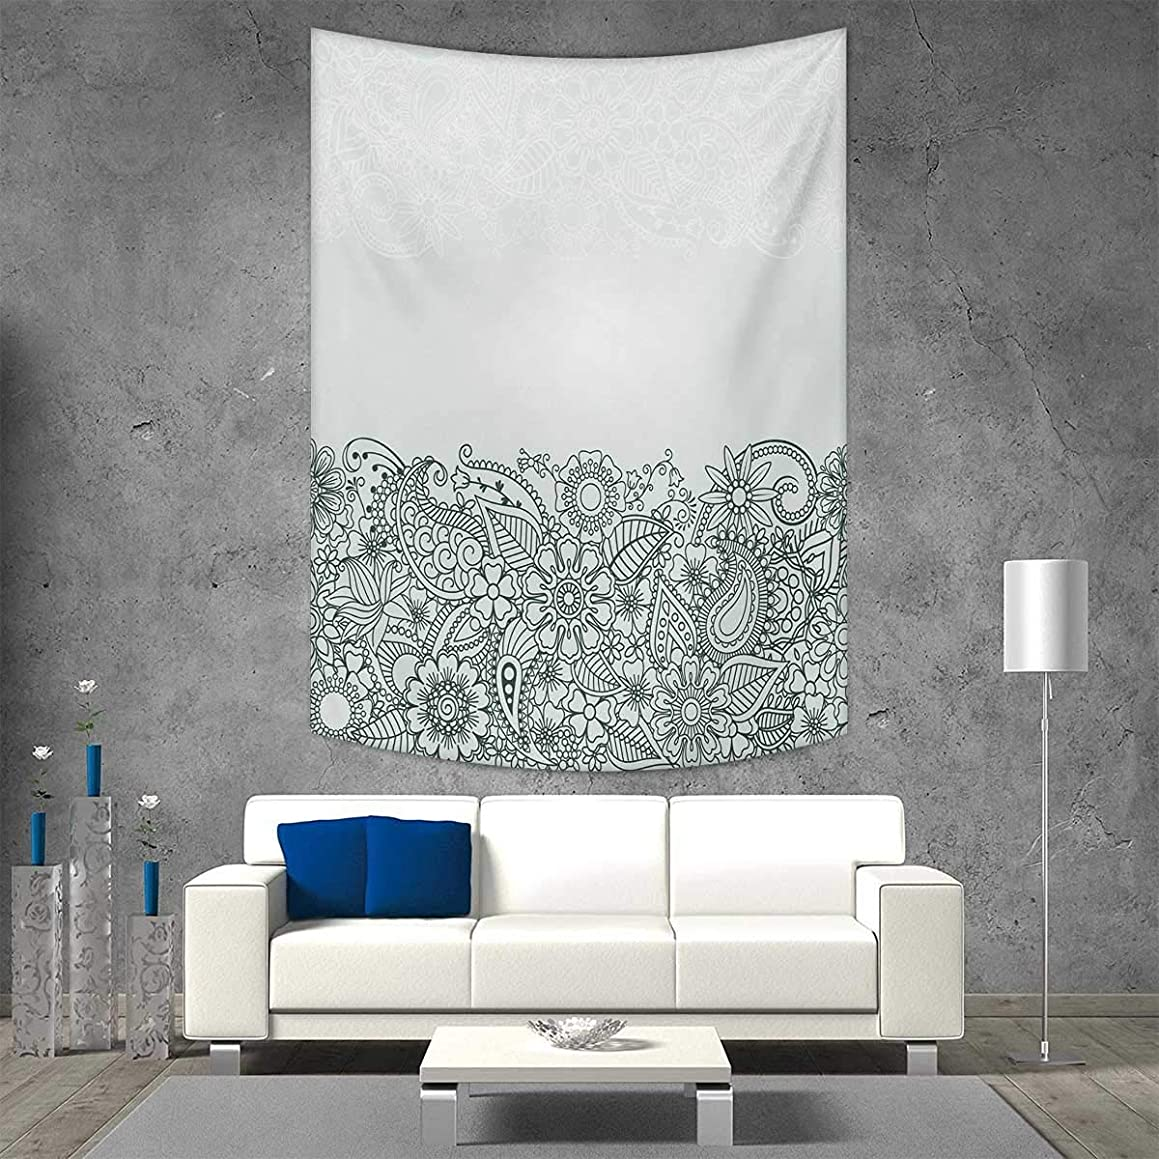 smallbeefly Henna Tapestry Wall Hanging 3D Printing South Asian Body Paint Design Floral Arrangement Various Wildflowers Leaves Beach Throw Blanket 57W x 74L INCH Green White